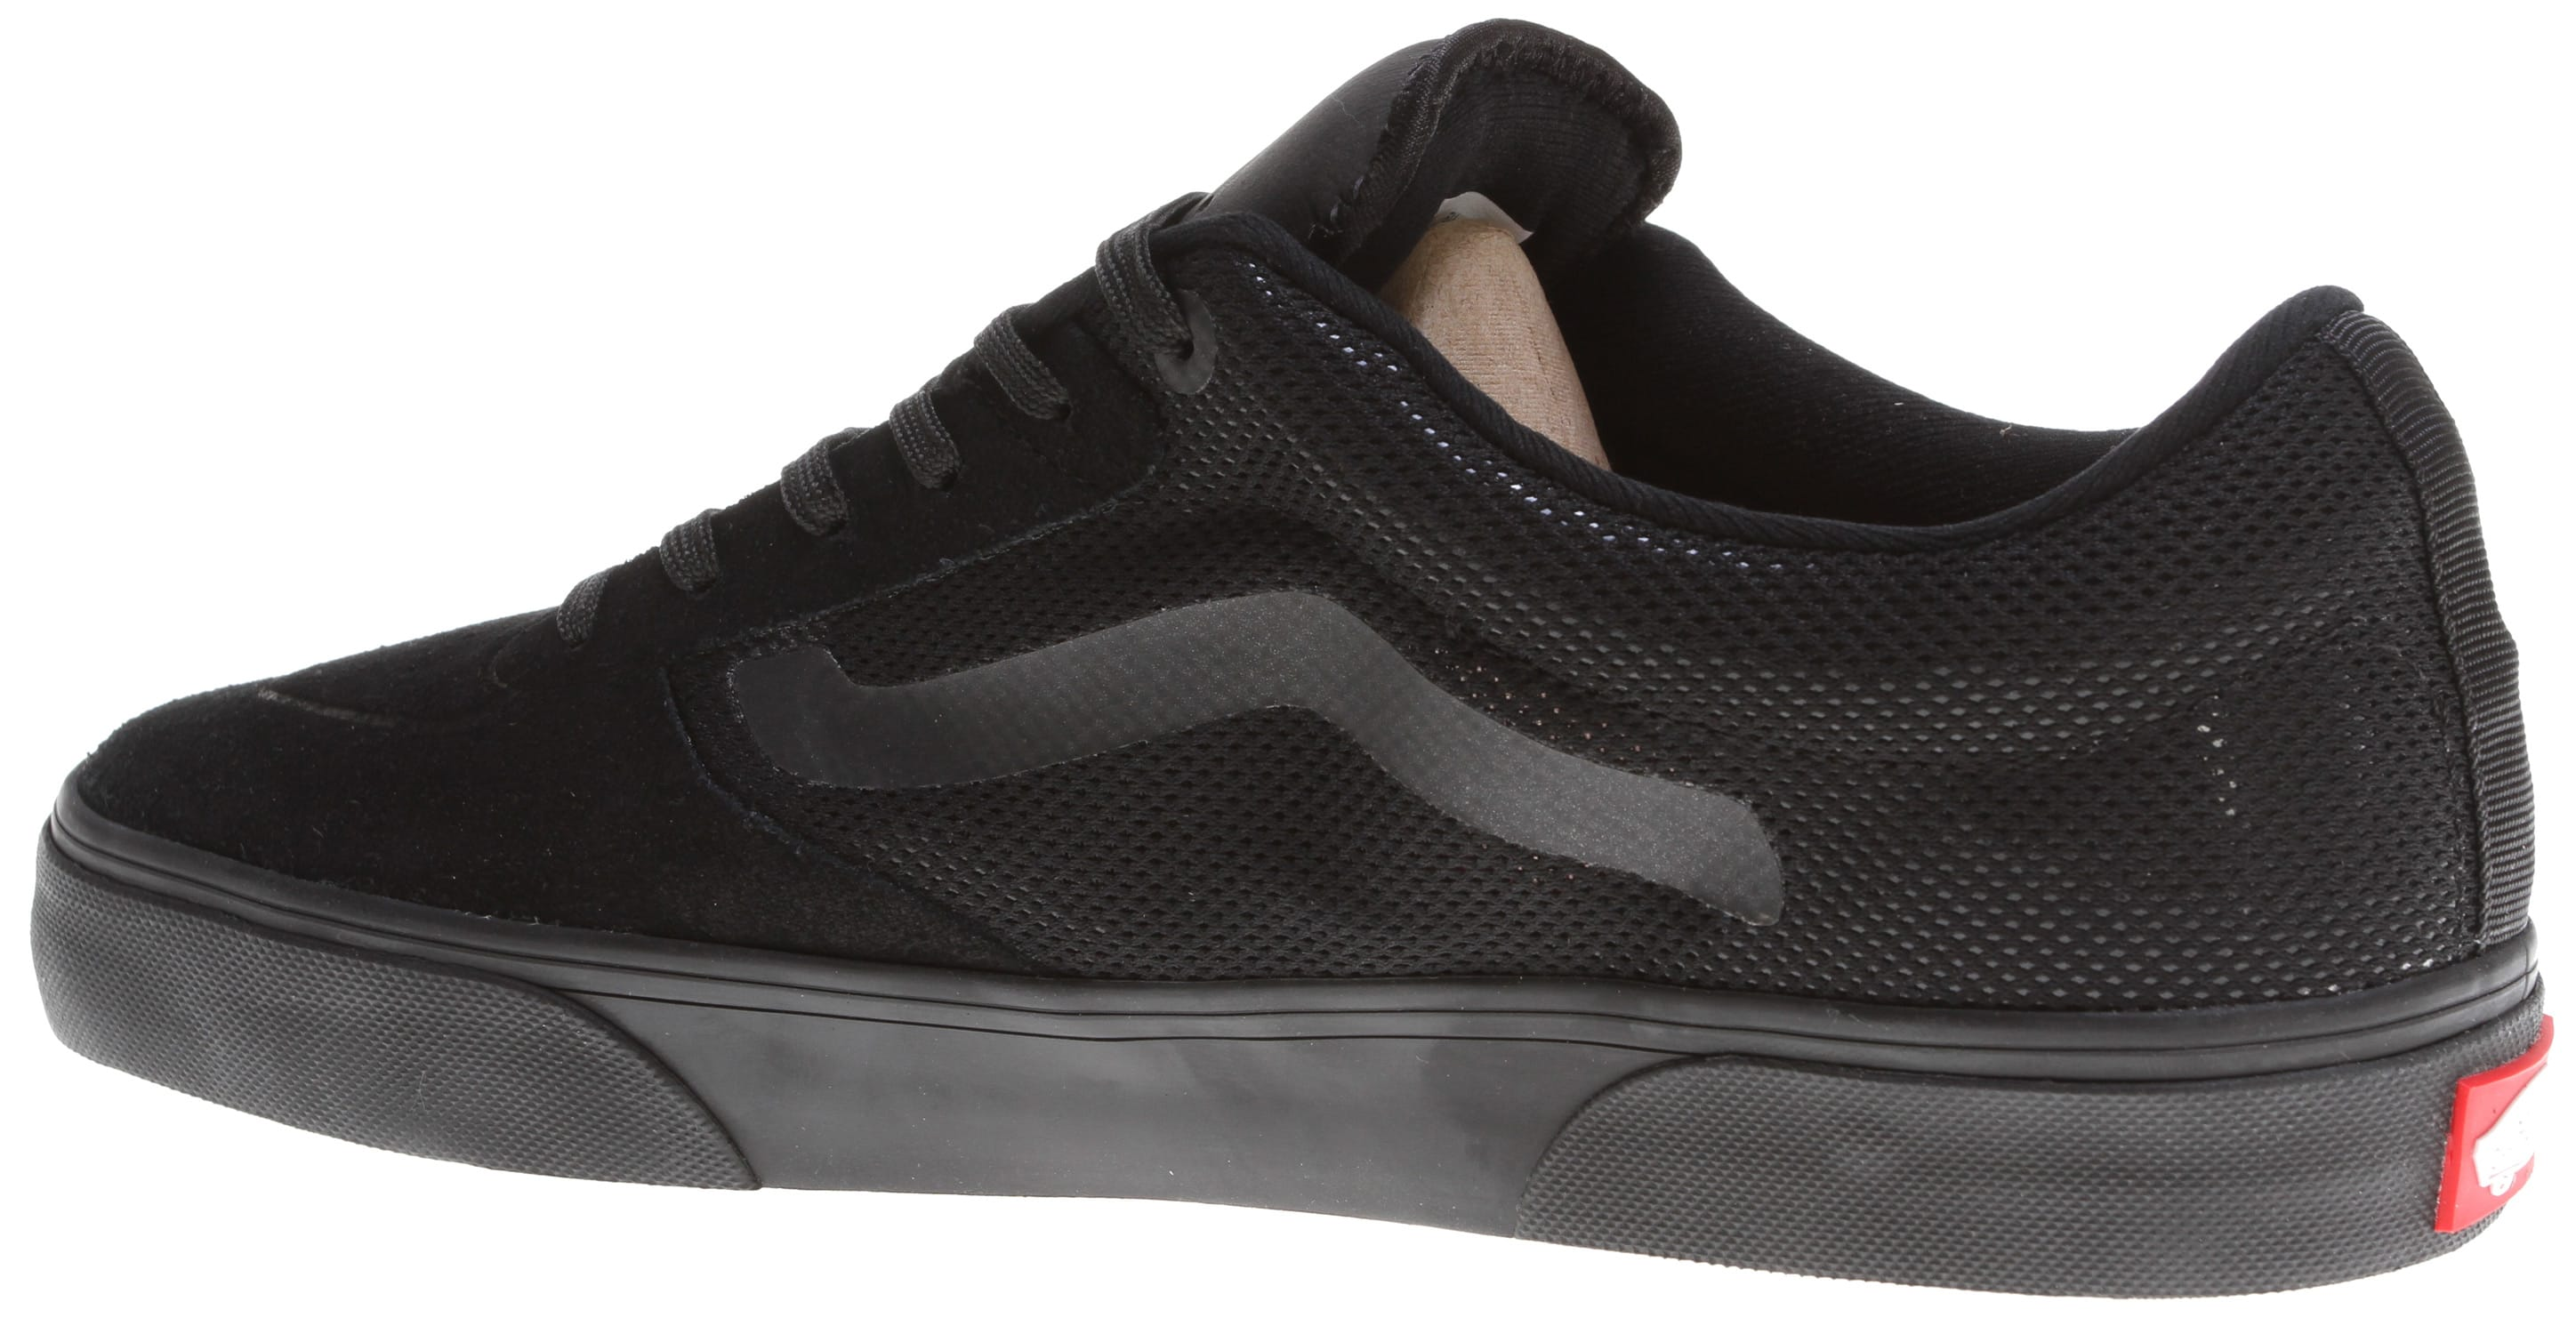 7572ed2993 Vans Rowley Pro Lite Skate Shoes - thumbnail 3